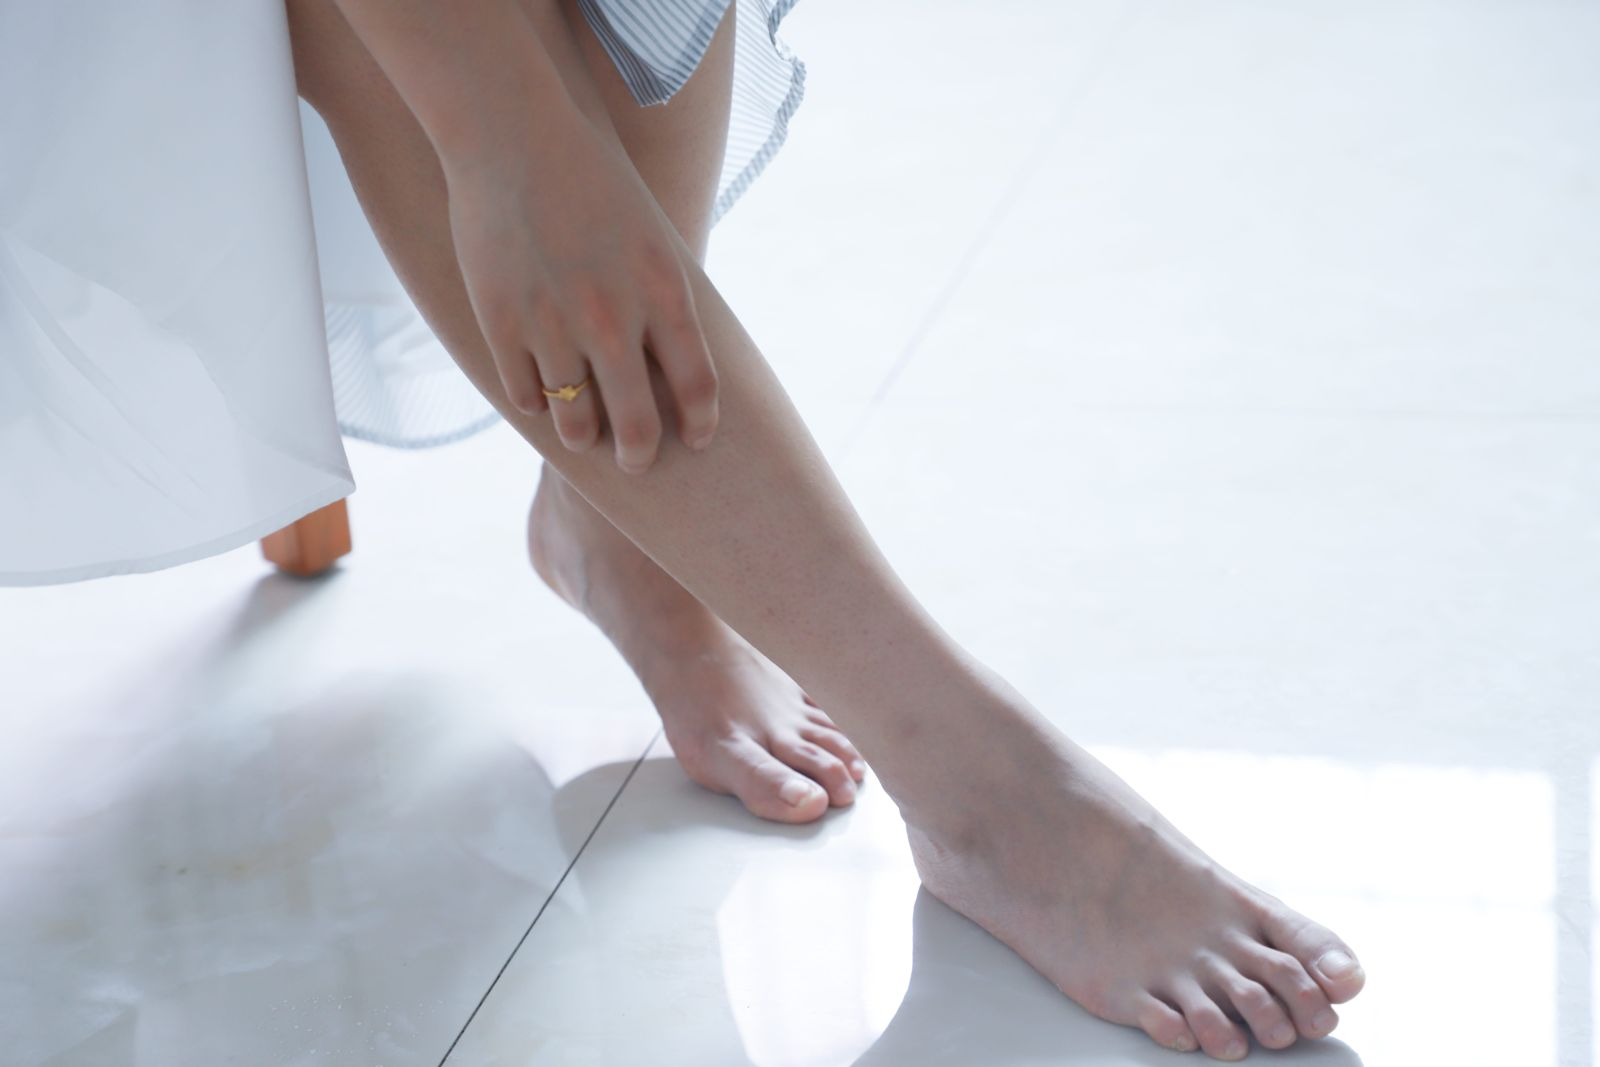 Woman reaching down to touch bare right foot on white floor